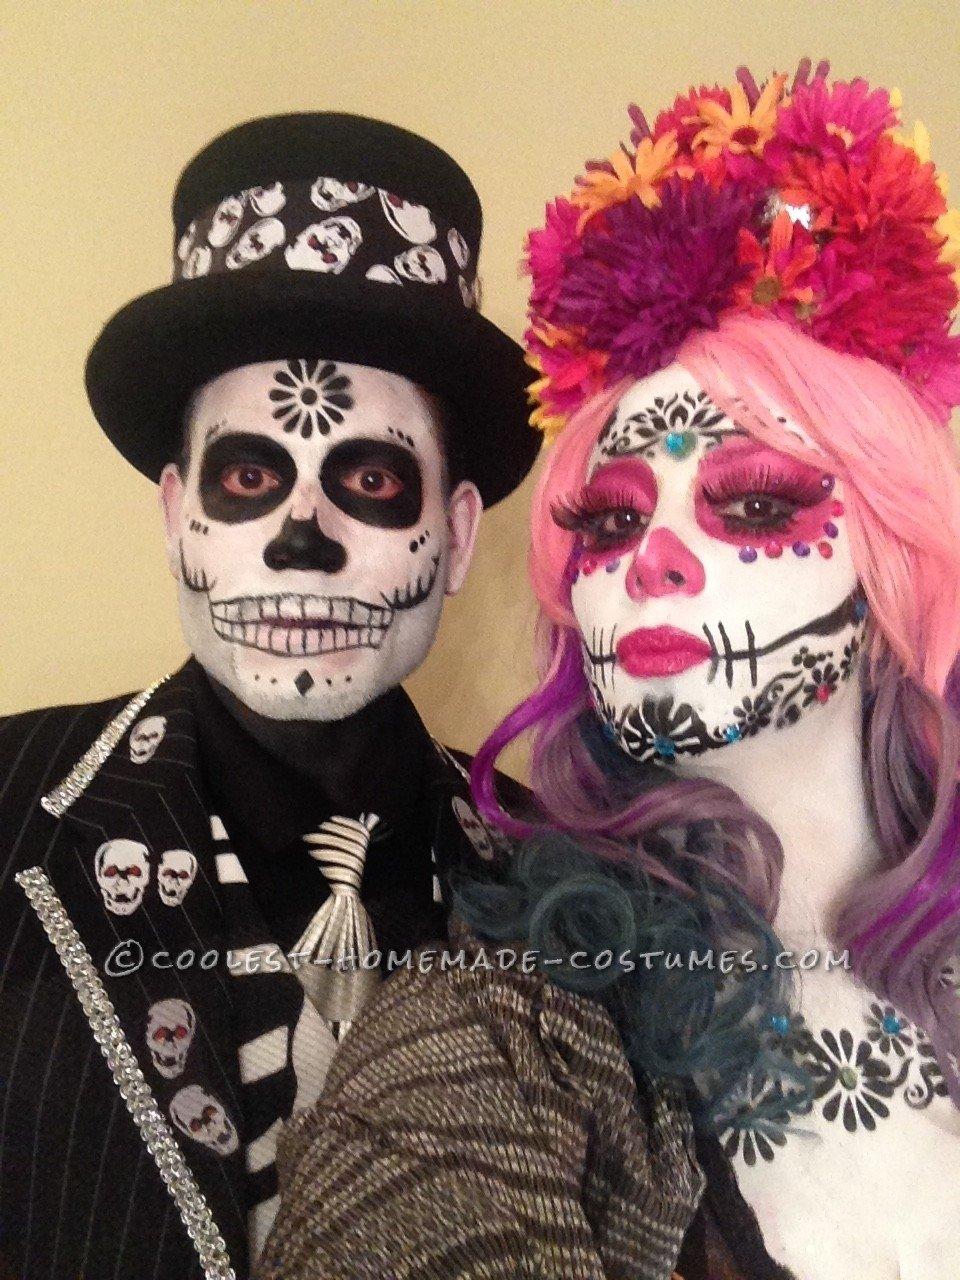 10 Wonderful Dia De Los Muertos Costumes Ideas 50 coolest homemade dia de los muertos costumes 2